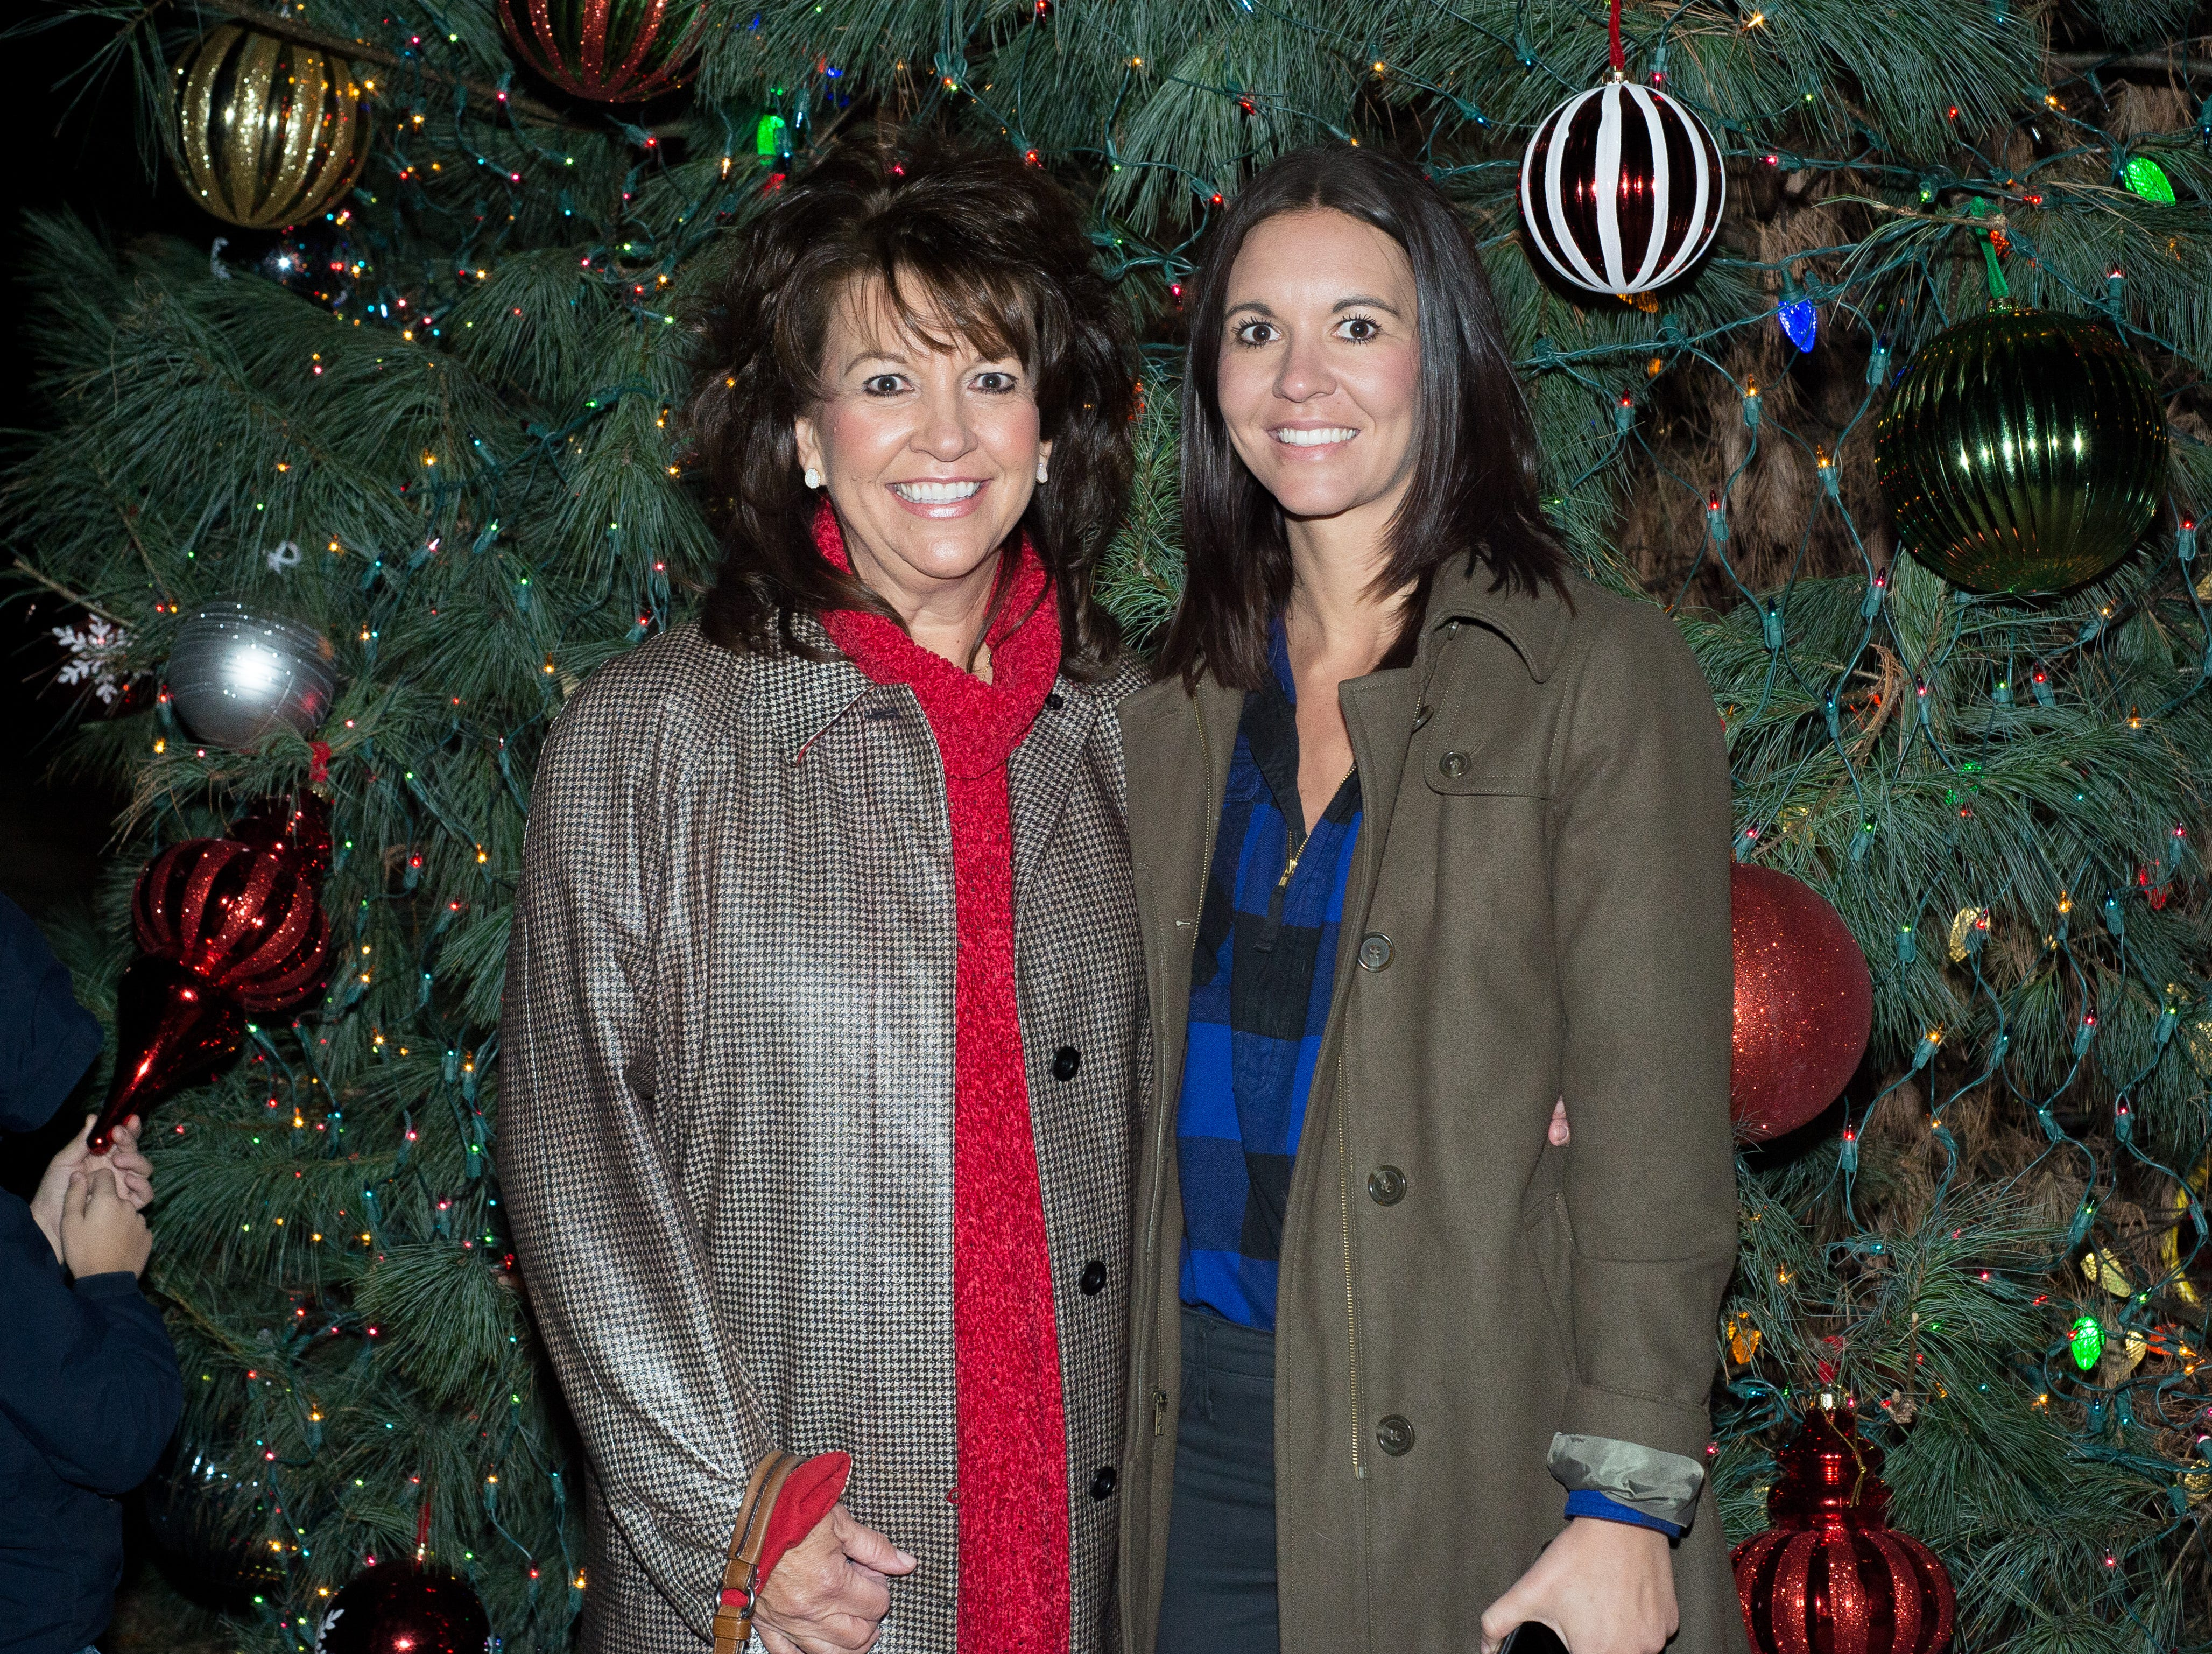 Ellen Smithmier and Joy Gregory, with Southern Breeze Staging & Design, stand in front of the tree that they decorated during the Hendersonville HolidayFest Annual Tree Lighting Ceremony at Memorial Park on Sunday, Nov. 25.